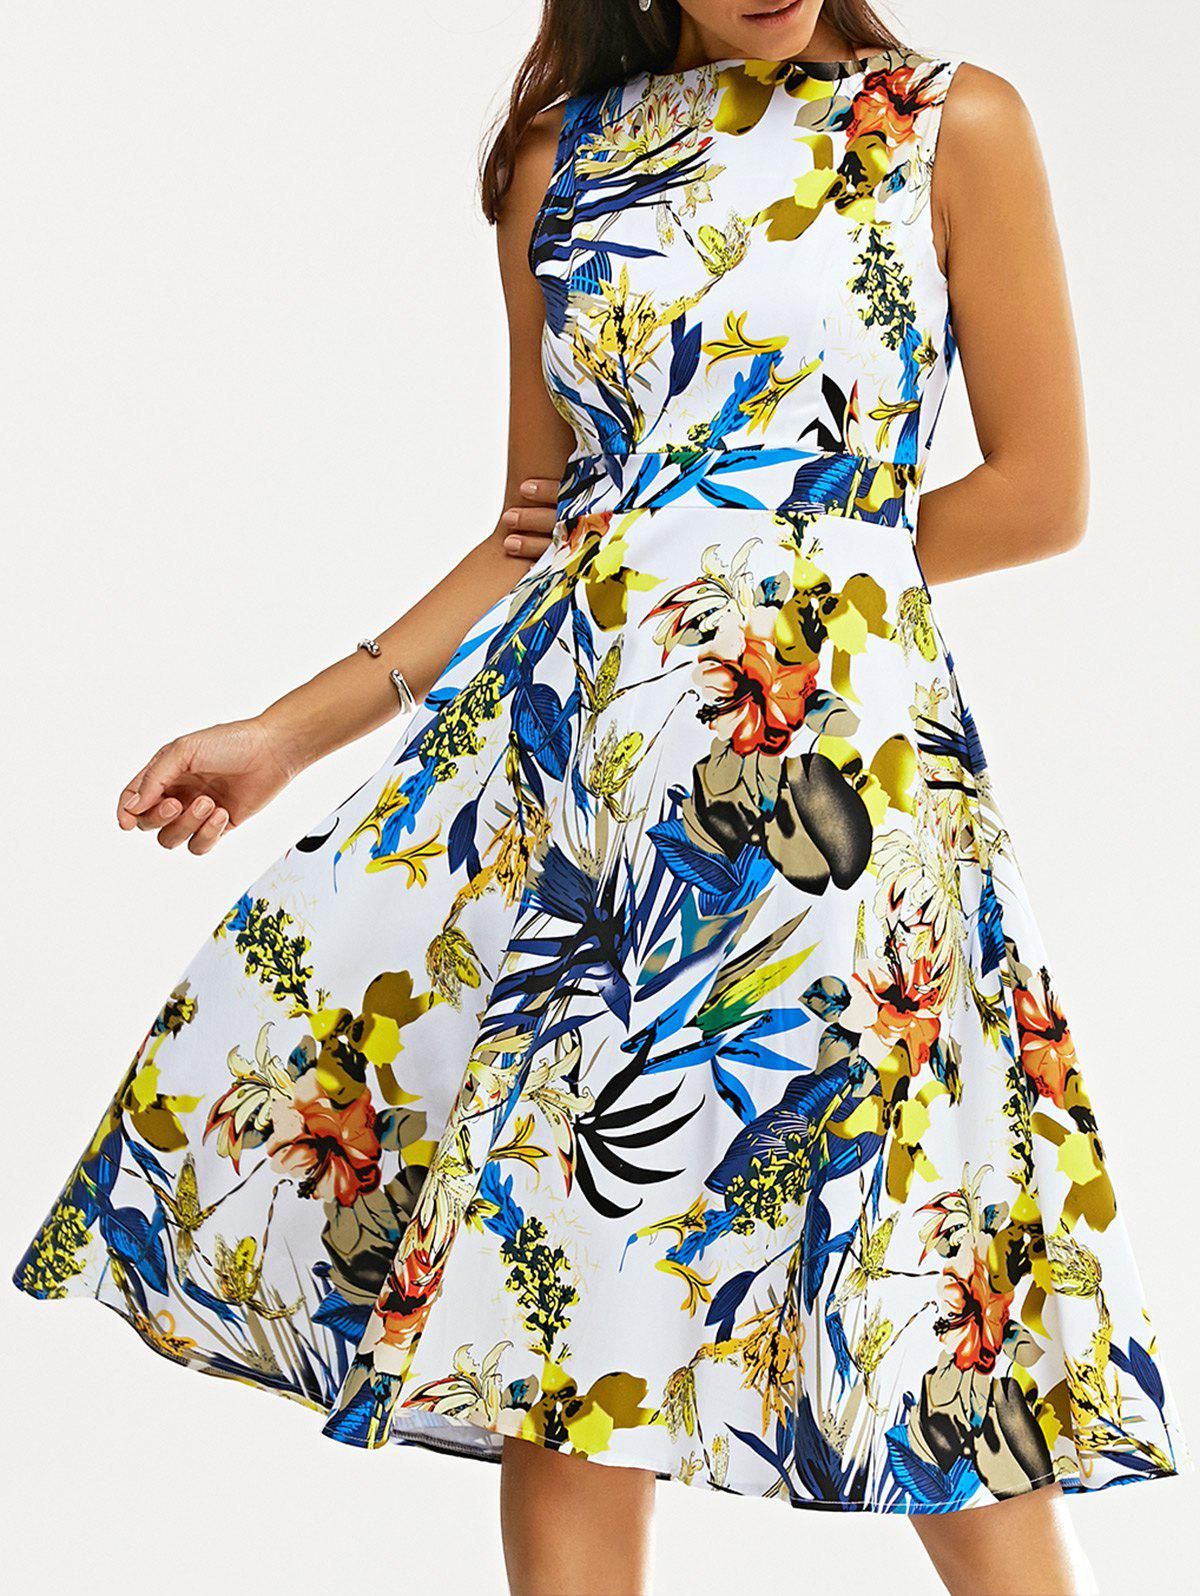 Retro Colorful Flower Print Sleeveless Skater Dress - COLORMIX 2XL